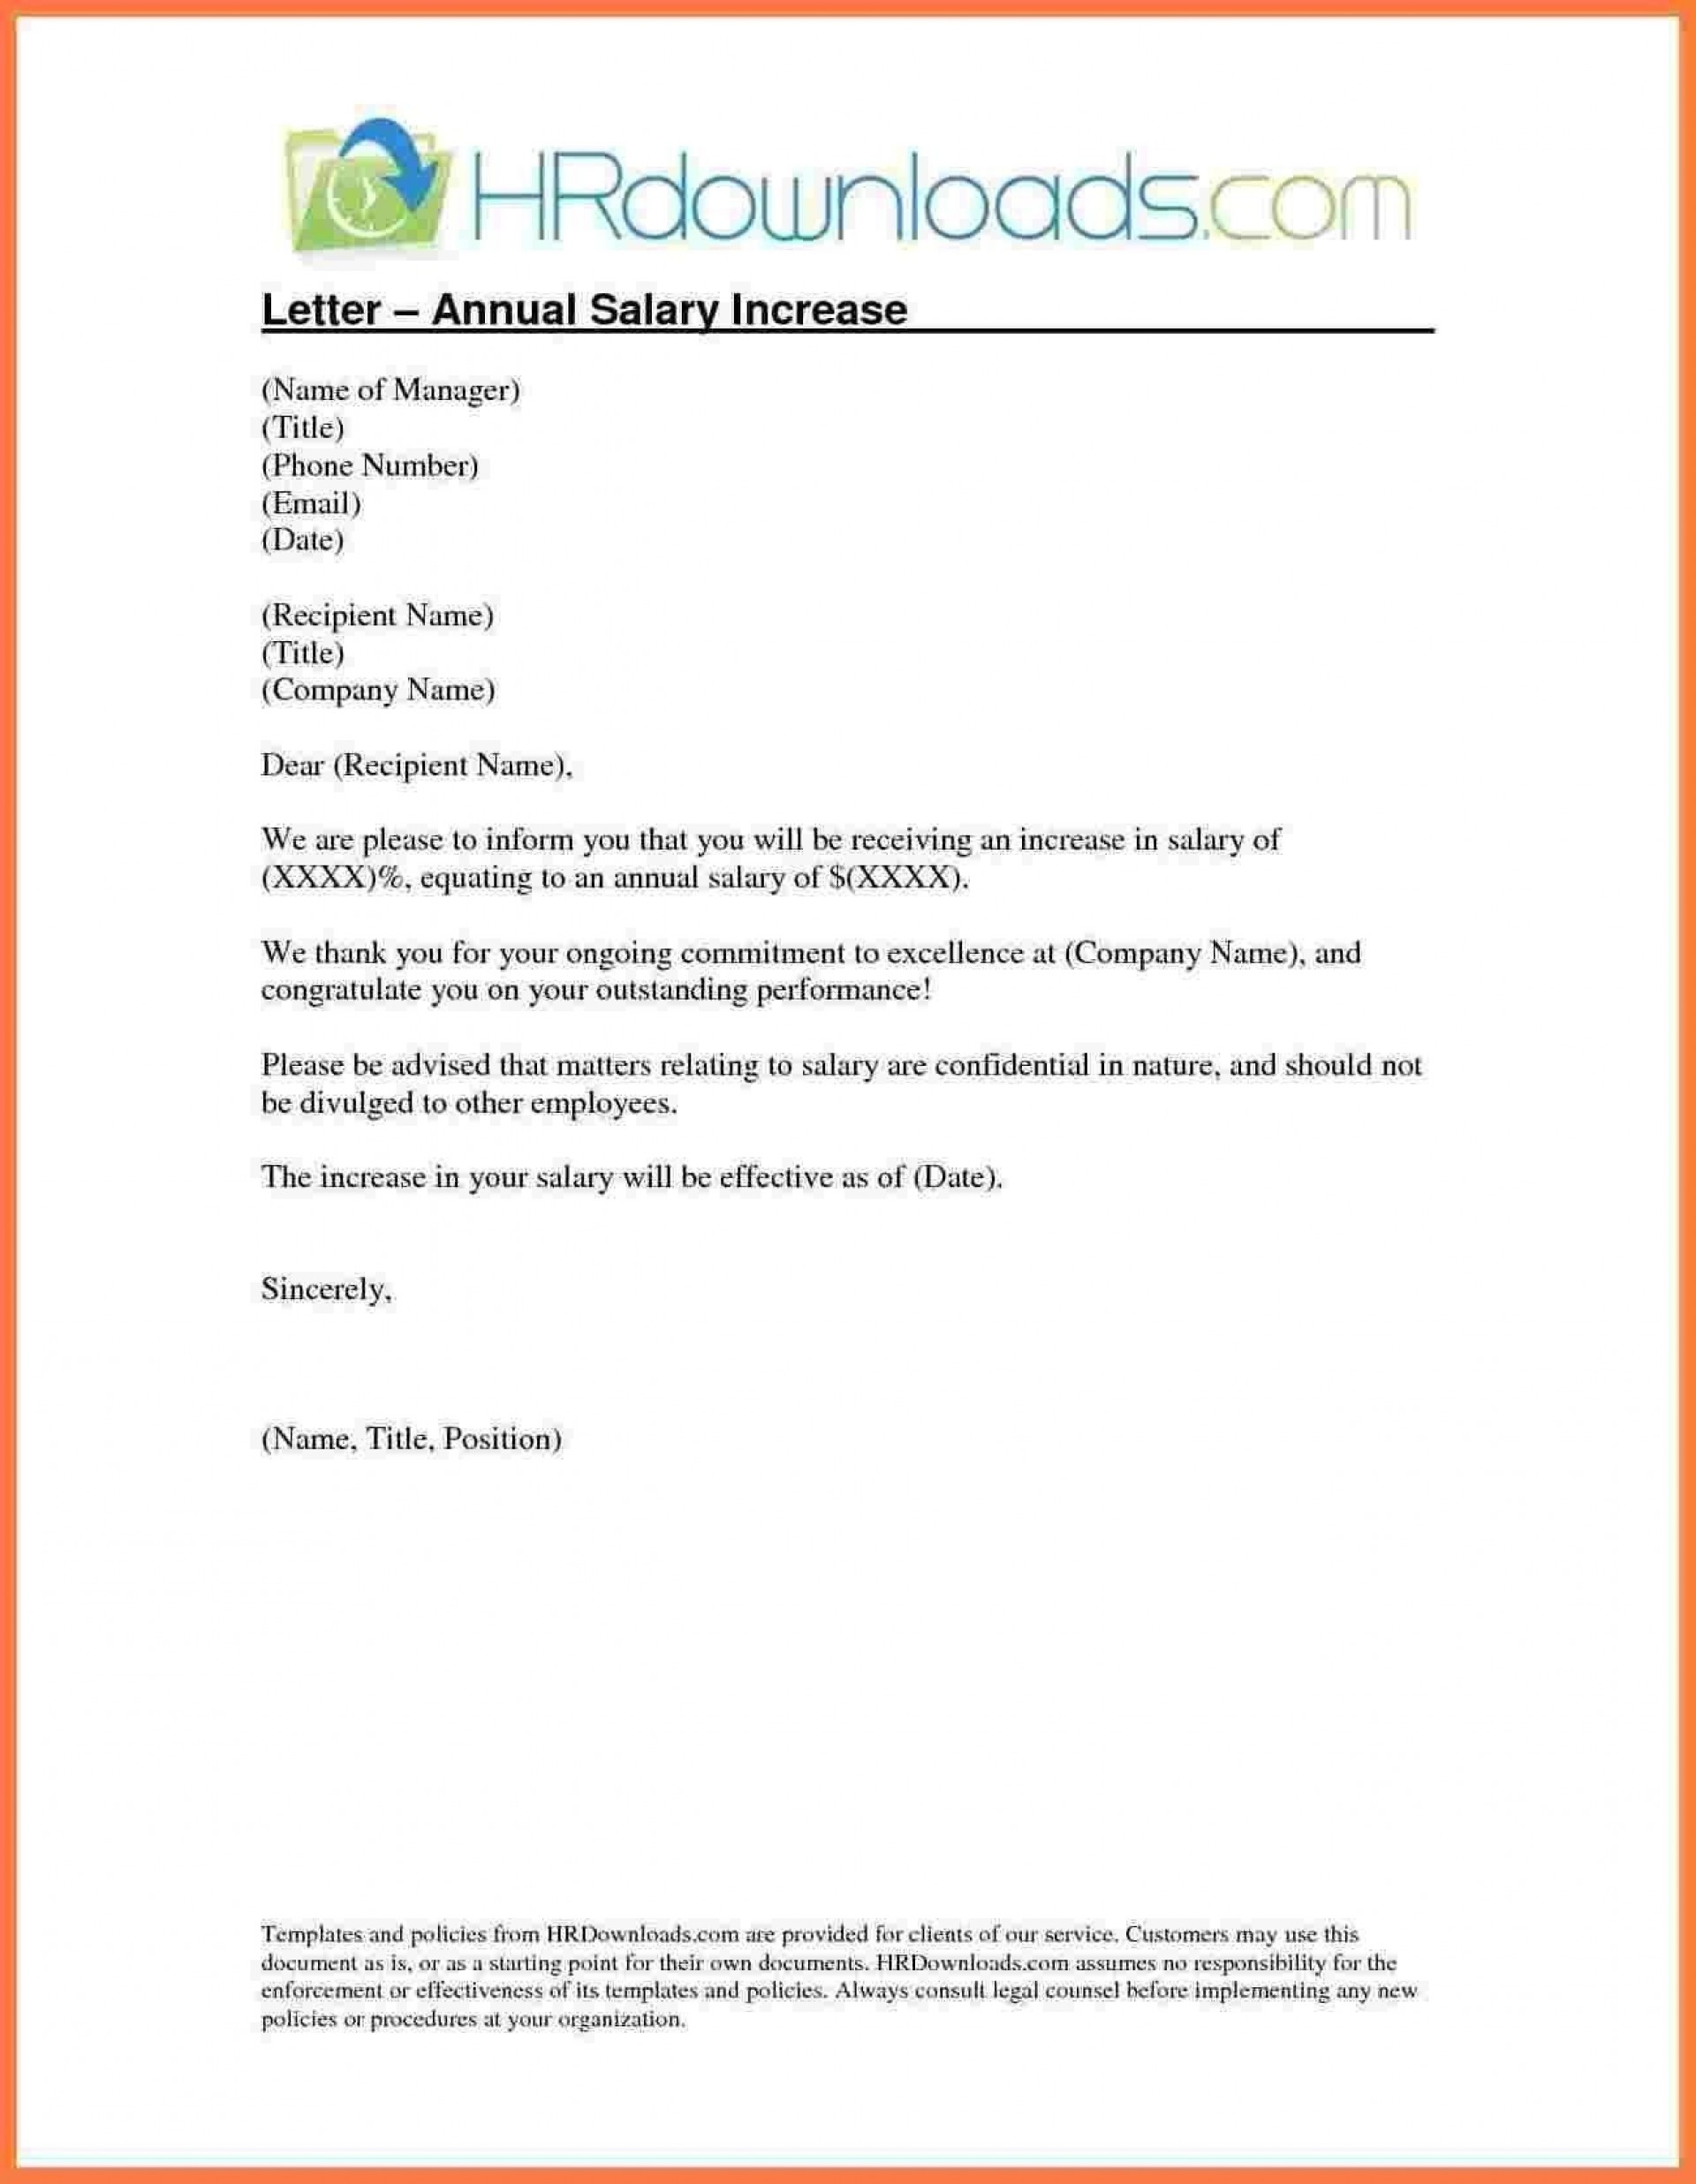 005 Singular Salary Increase Letter Template Idea  From Employer To Employee Australia No For1920